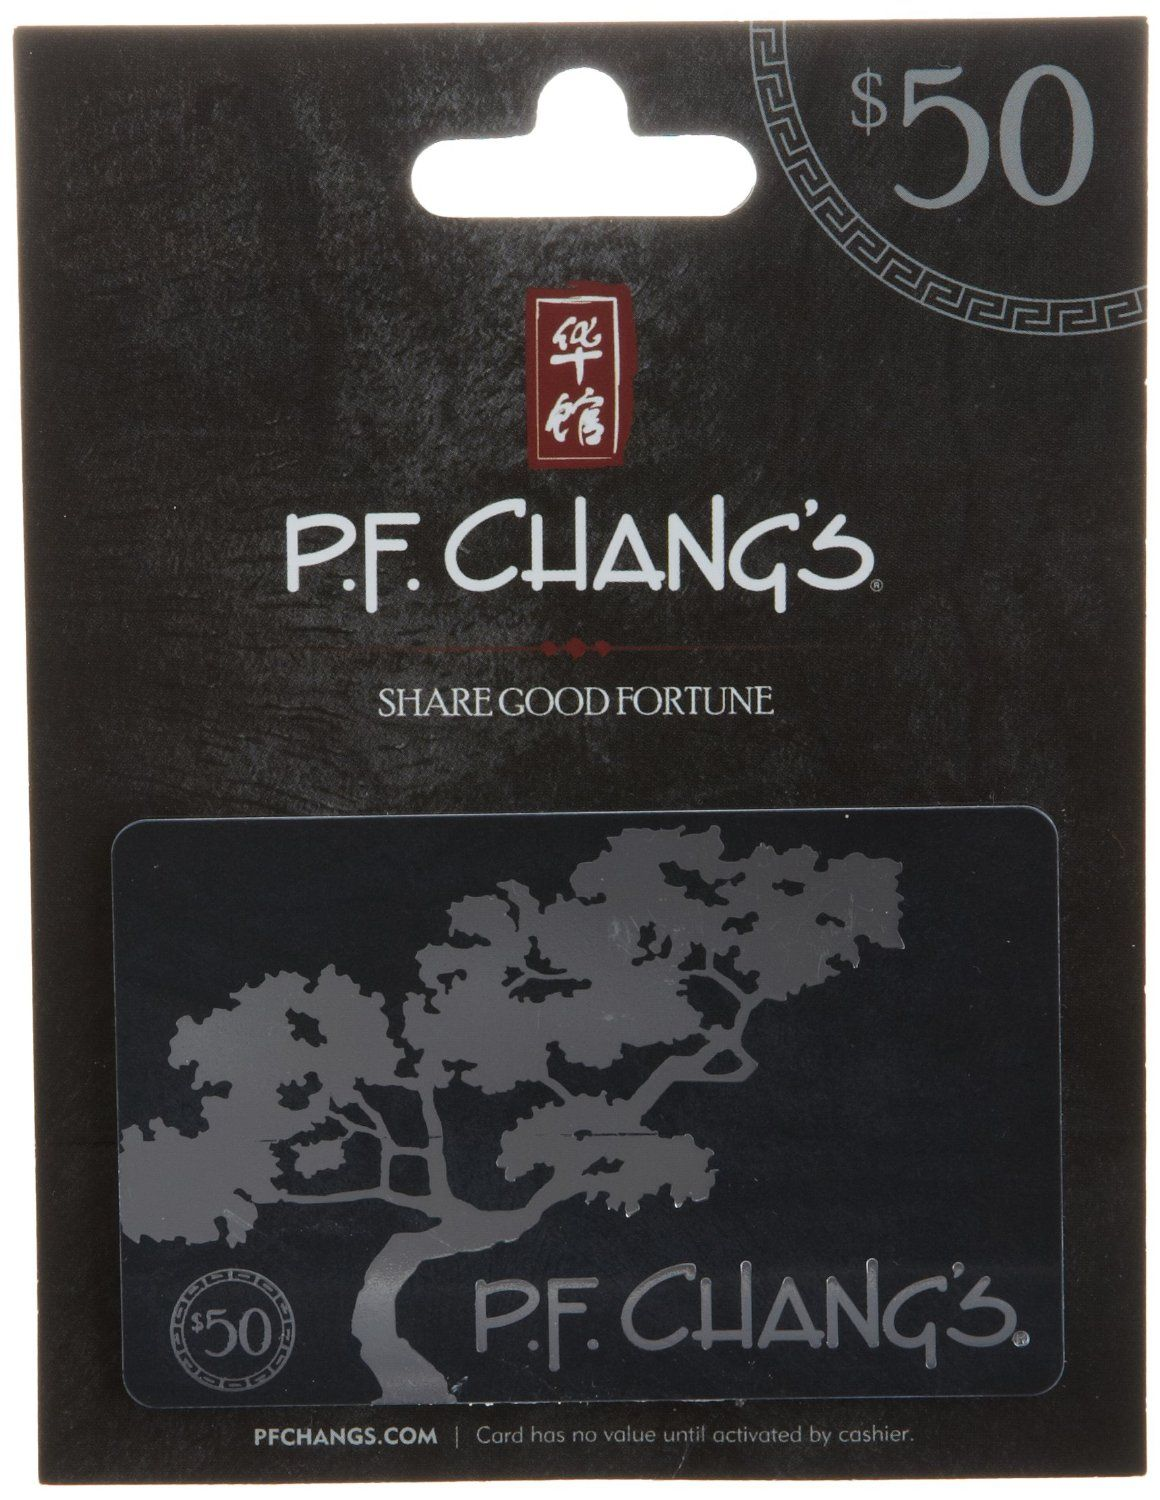 P.F. Changs Gift Card | MY Favorite Gift Cards Ideas | Pinterest